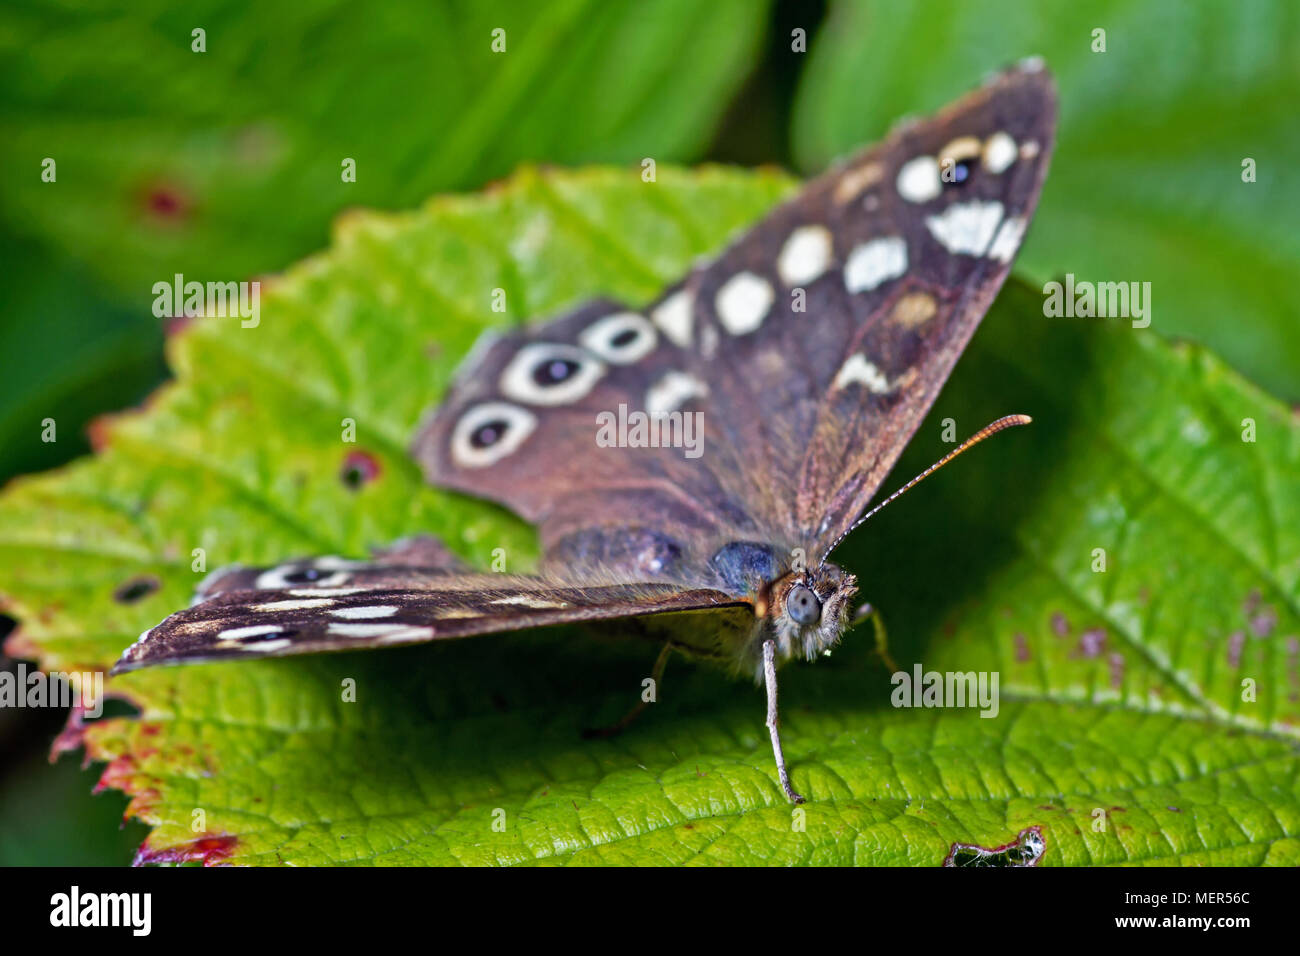 A Speckled Wood Butterfly. Found in and on the borders of woodland areas, this butterfly was found on vegetation above Scarborough's North Bay. - Stock Image